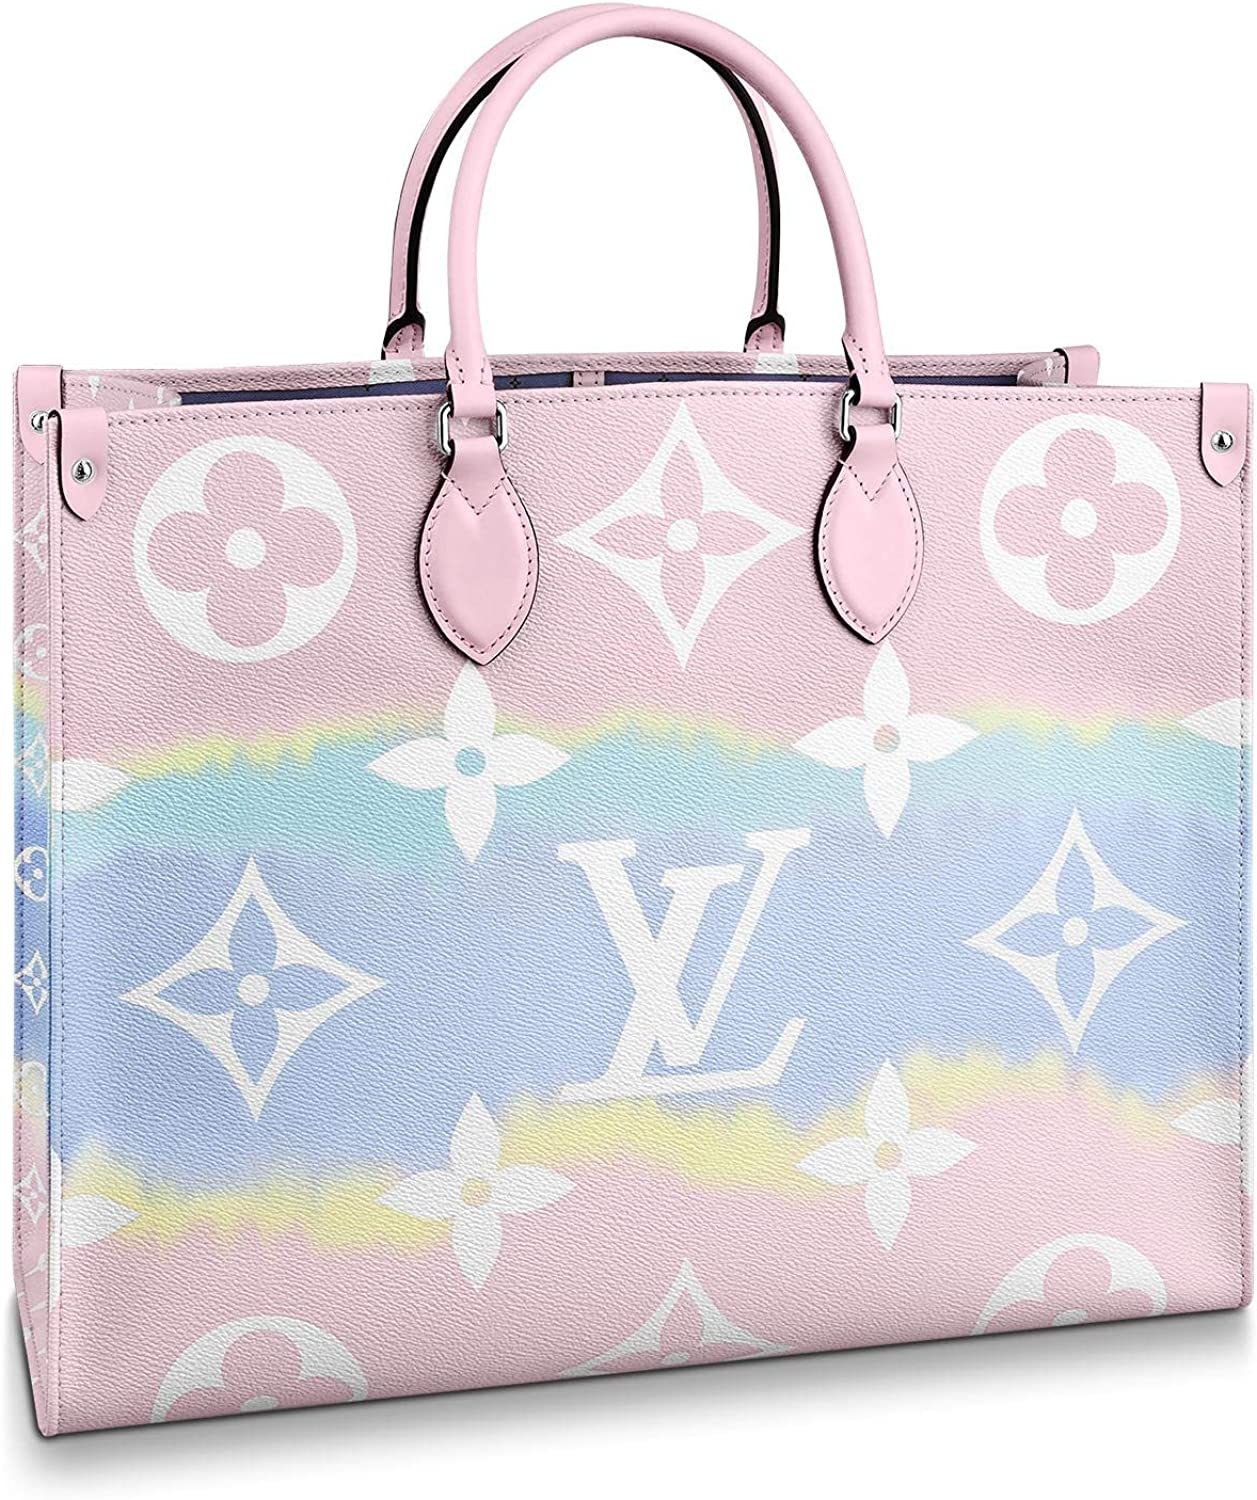 Louis Vuitton LV Escale Onthego GM Pastel Tote Bags Limited Edition Purse Handbags